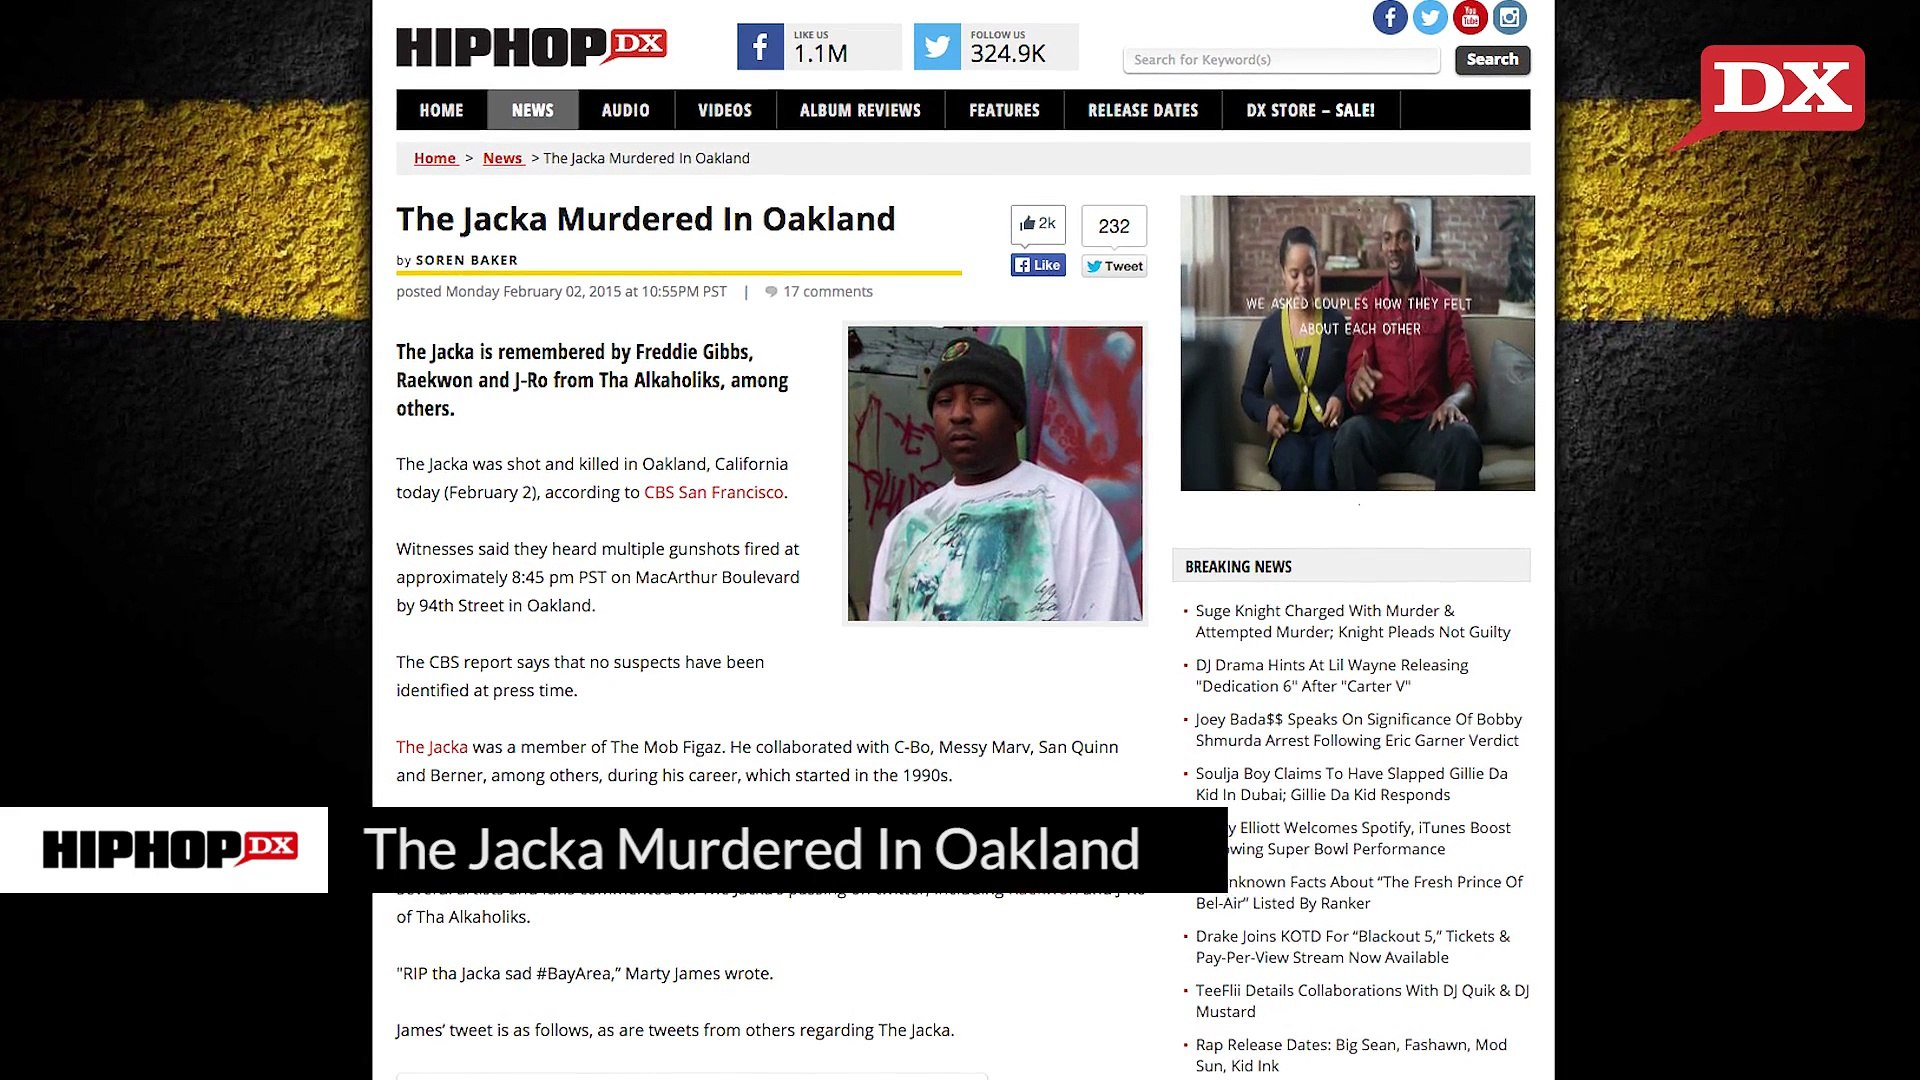 The Jacka Murdered In Oakland & Soulja Boy Claims He Smacked Gillie Da Kid - Watch Hip Hop Music